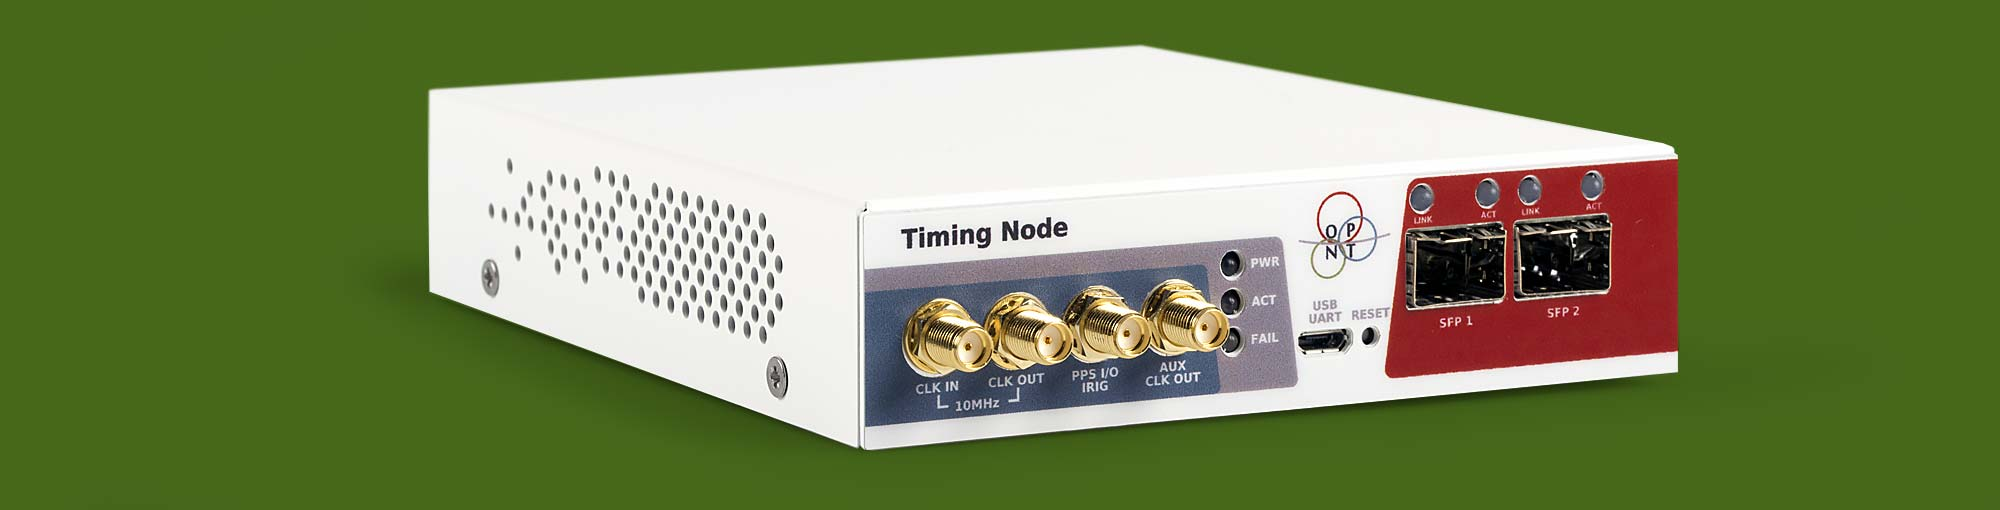 Timing Node